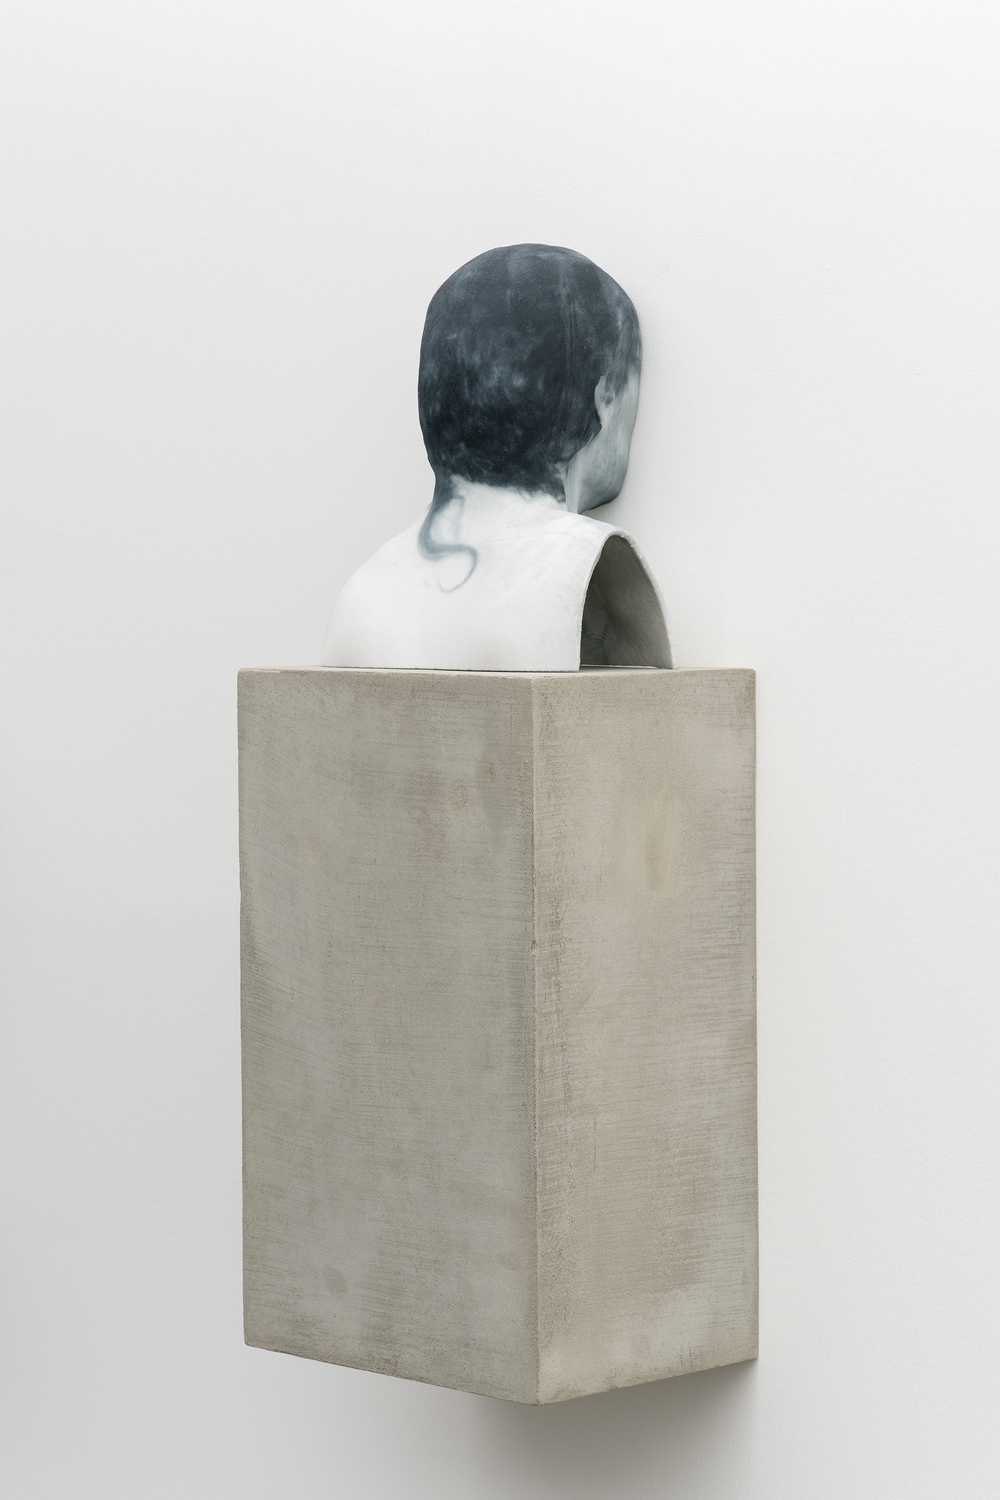 Man of Words (5) 2014 Pigmented plaster ZPrint, concrete  32.25 x 12 x 9 inches